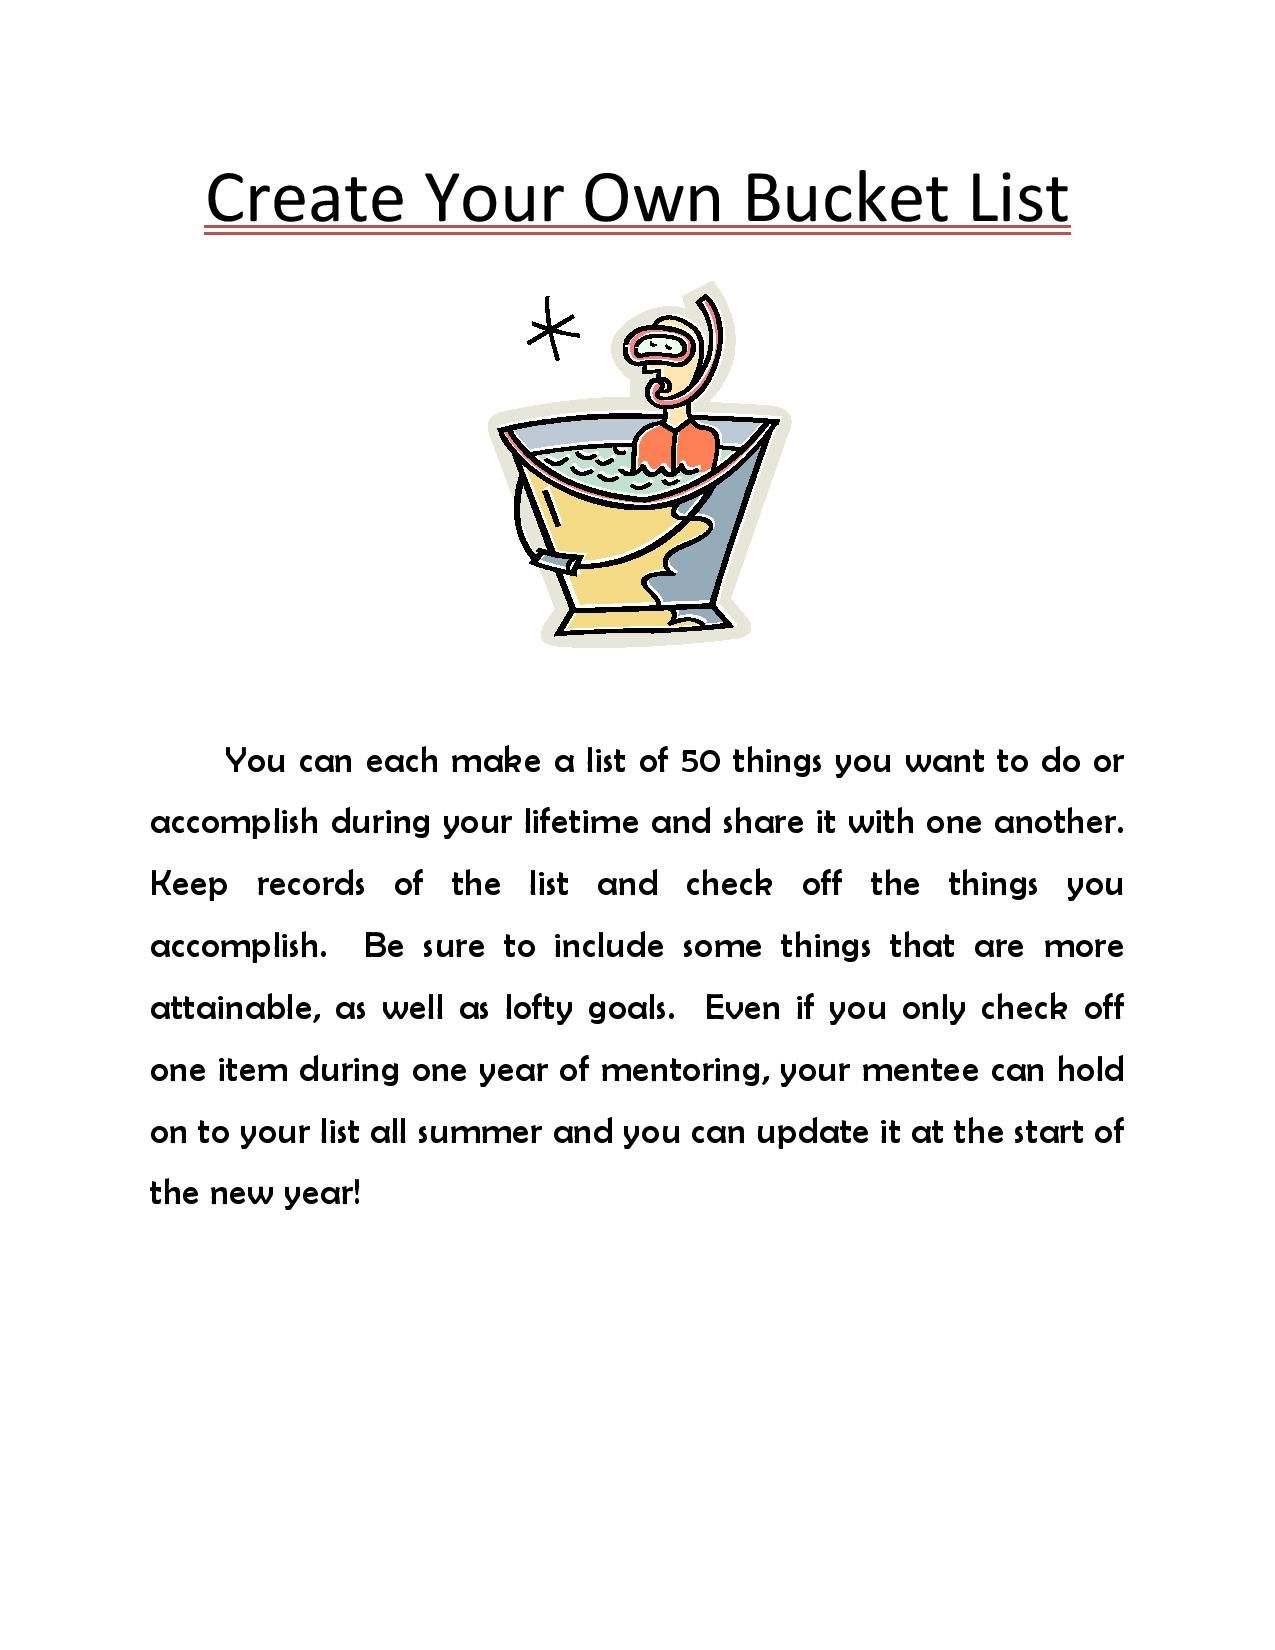 Create A Bucket List With Your Mentee